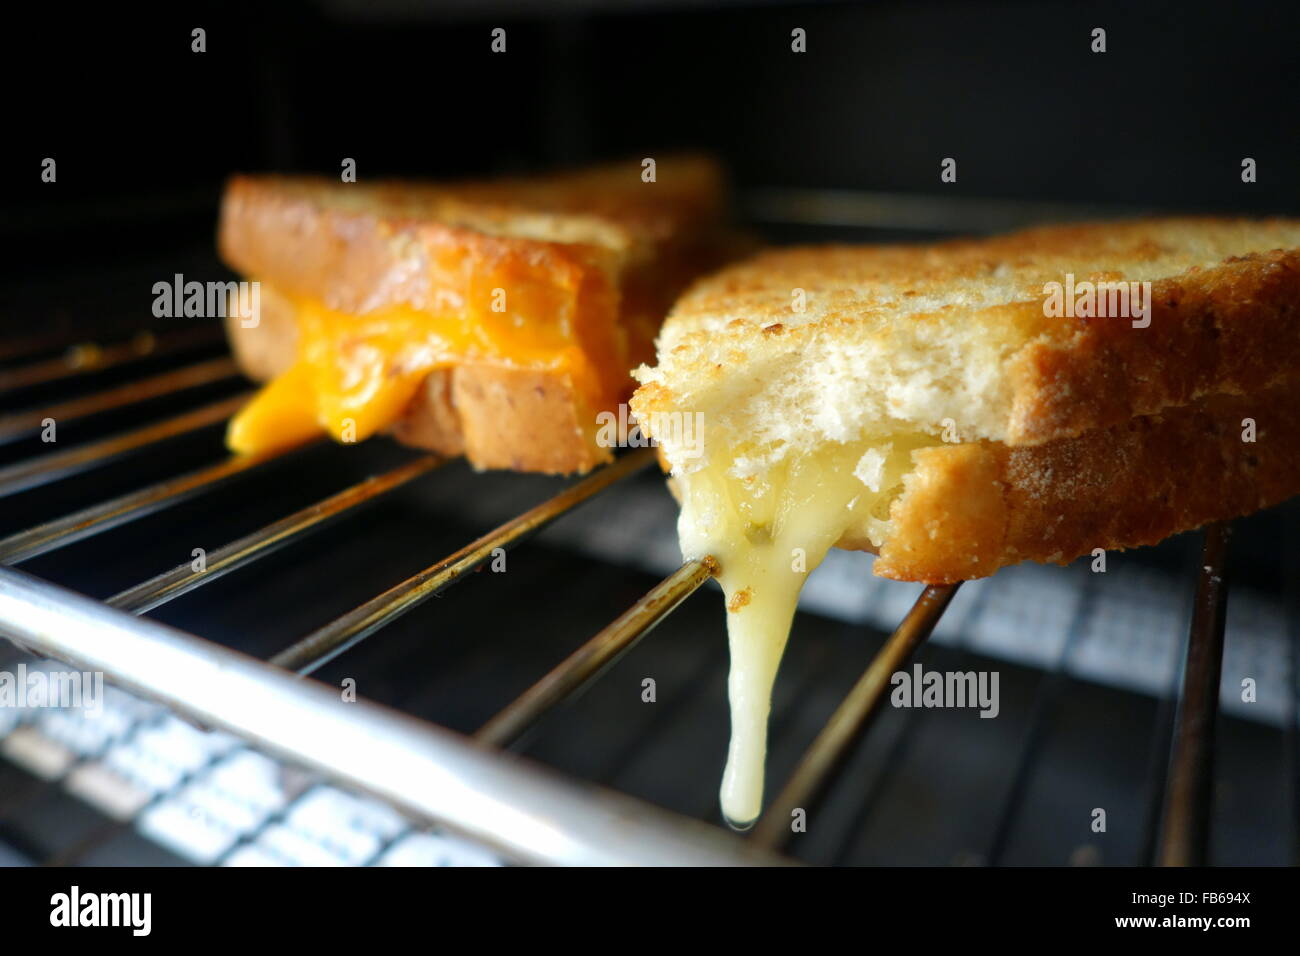 Melting Cheese Stock s & Melting Cheese Stock Alamy